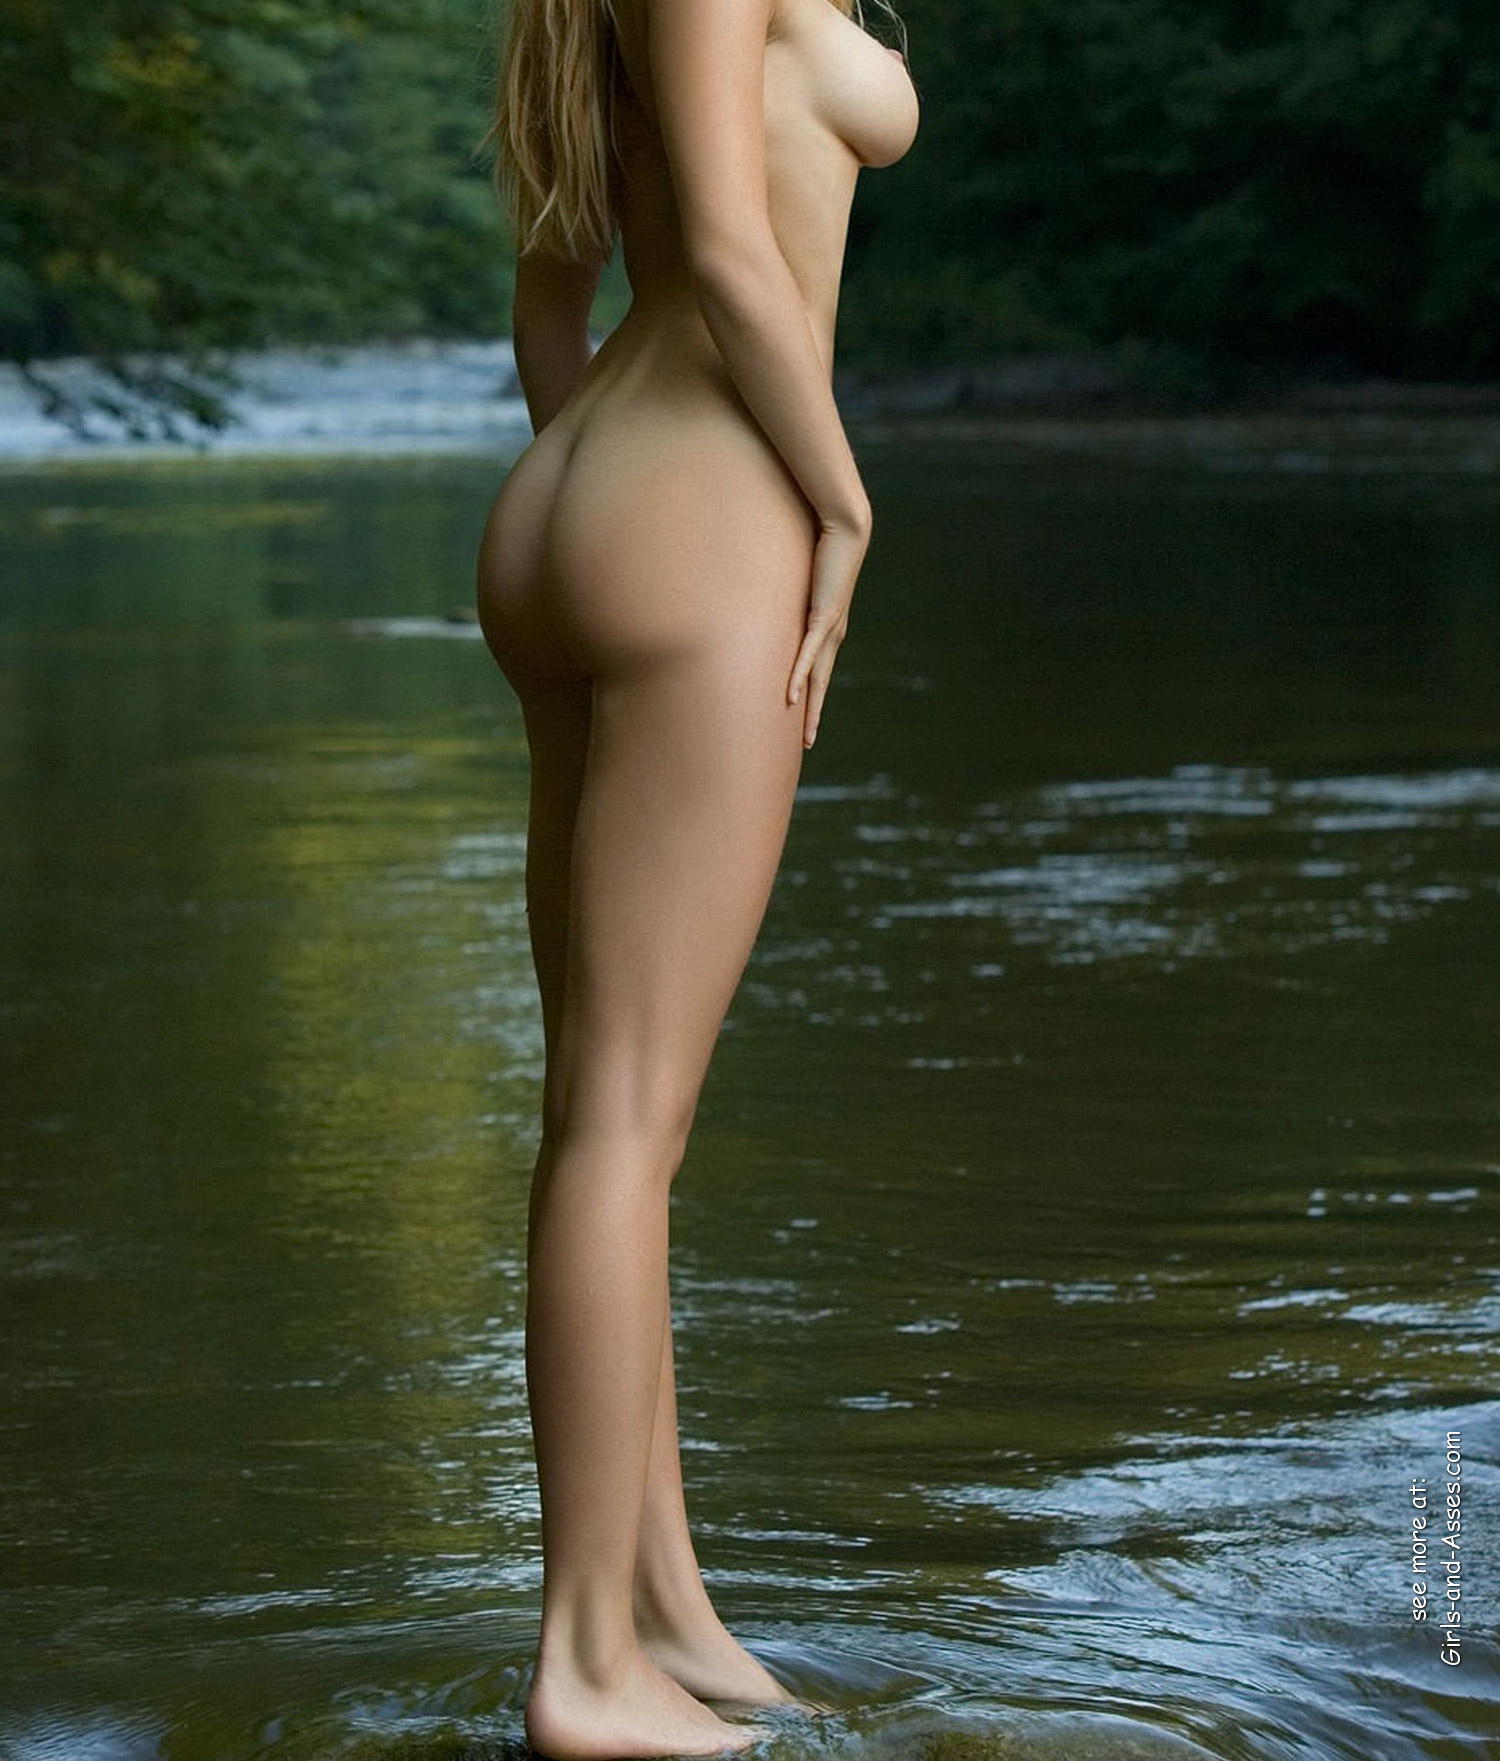 naked girl with cute butt on the river photo 01007